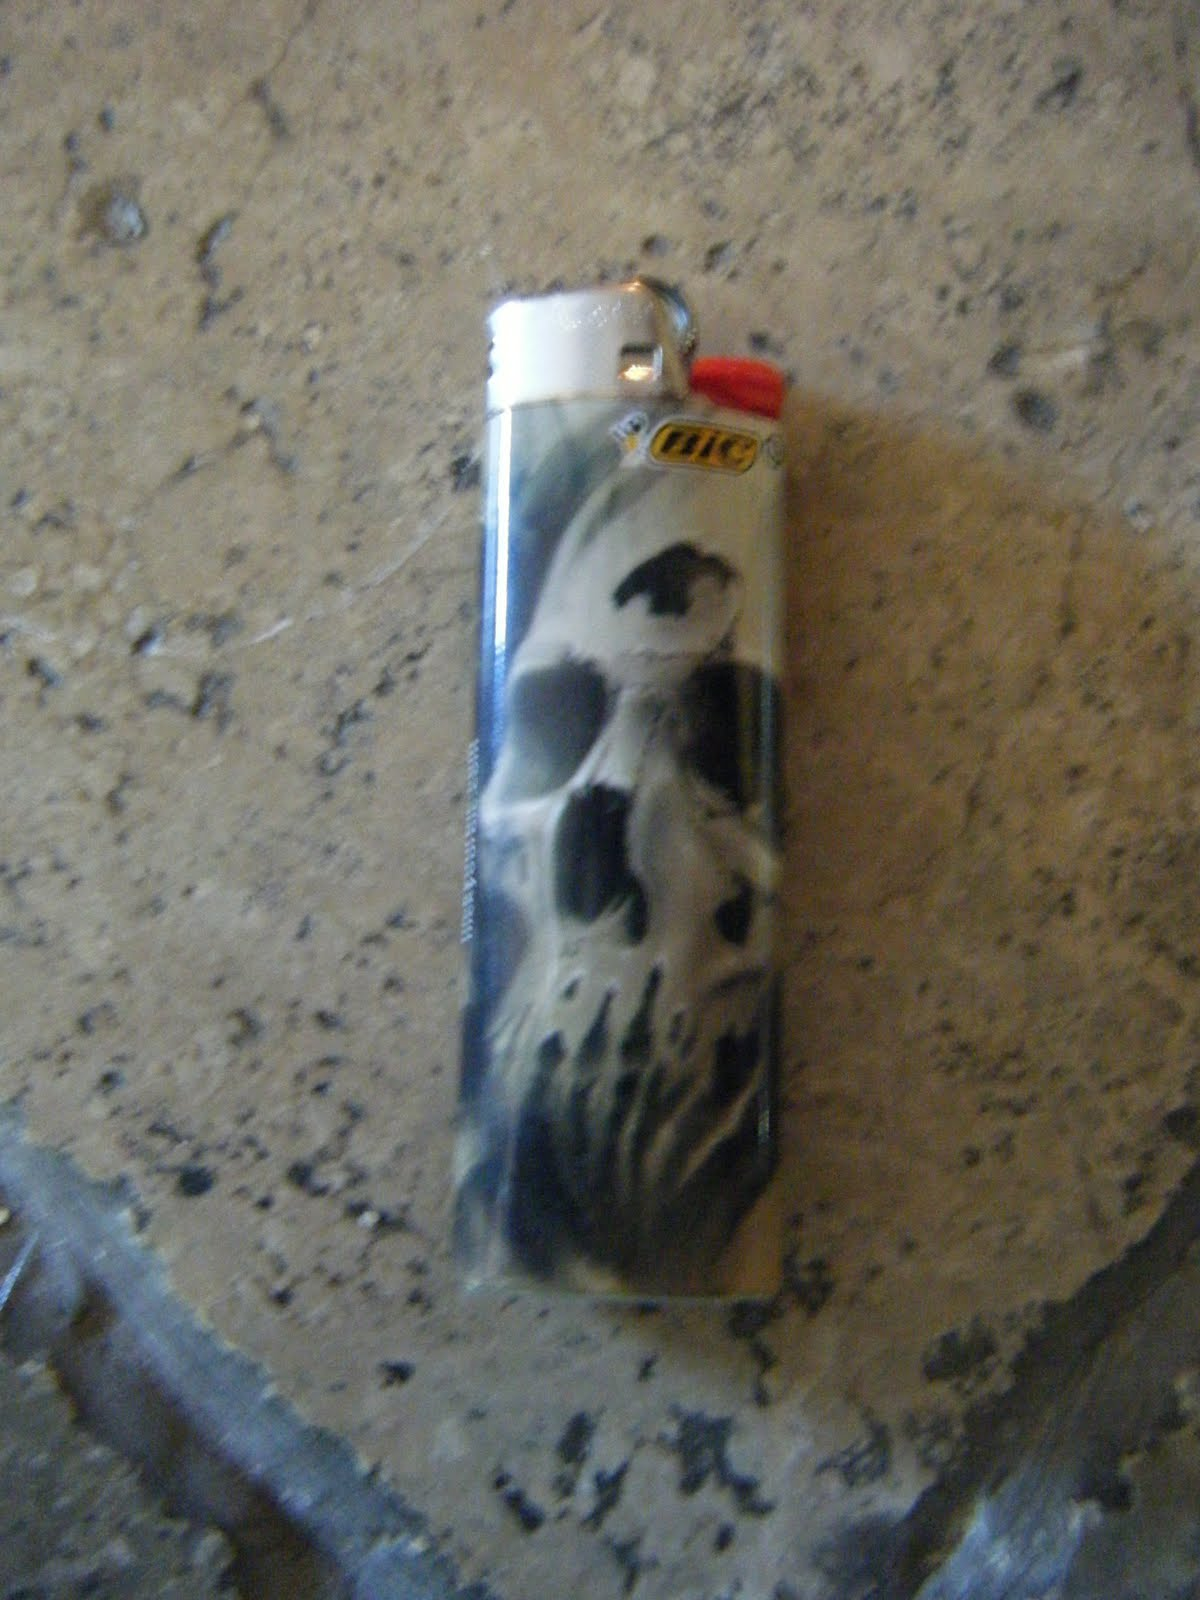 channel 13 bic skull lighter. Black Bedroom Furniture Sets. Home Design Ideas